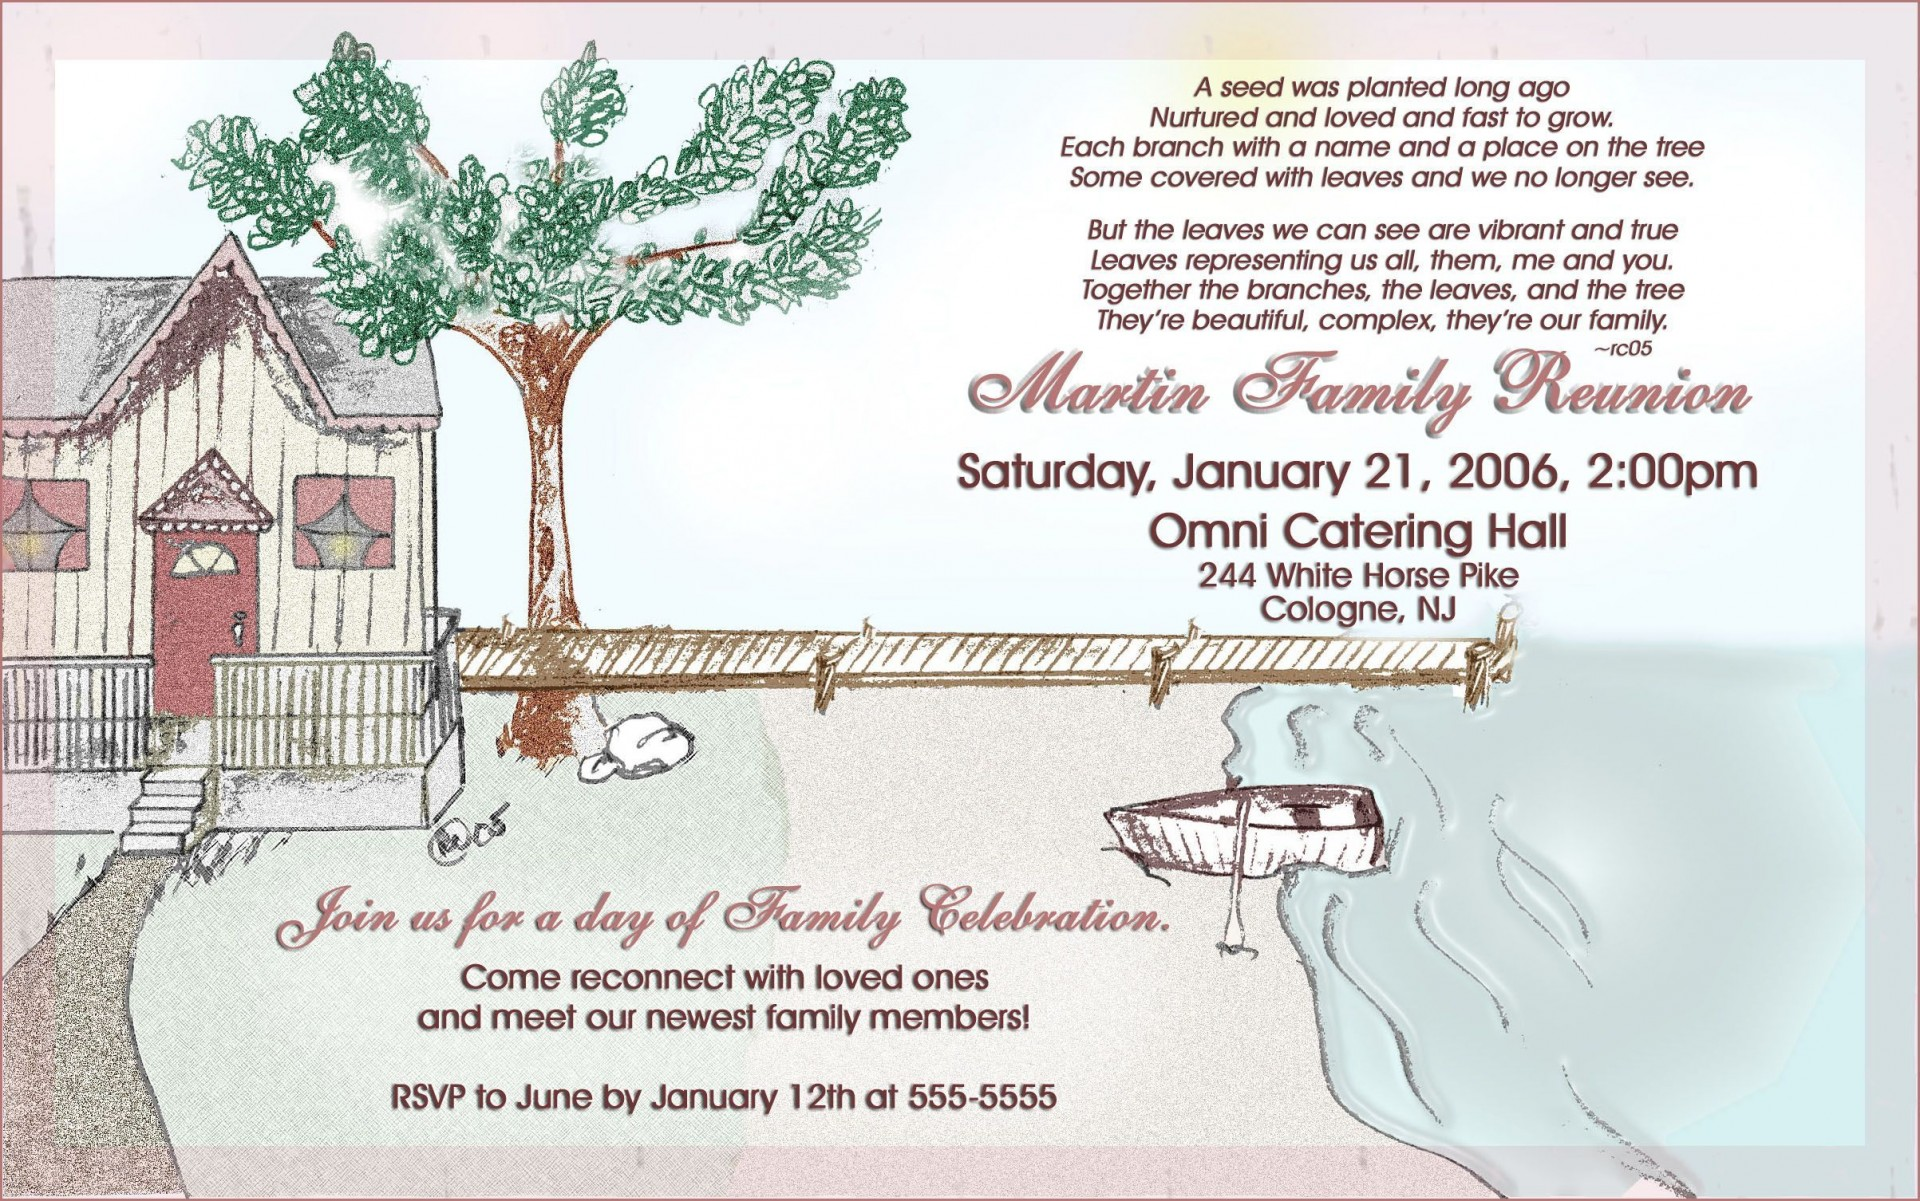 003 Rare Family Reunion Flyer Template Design  Templates Free For1920